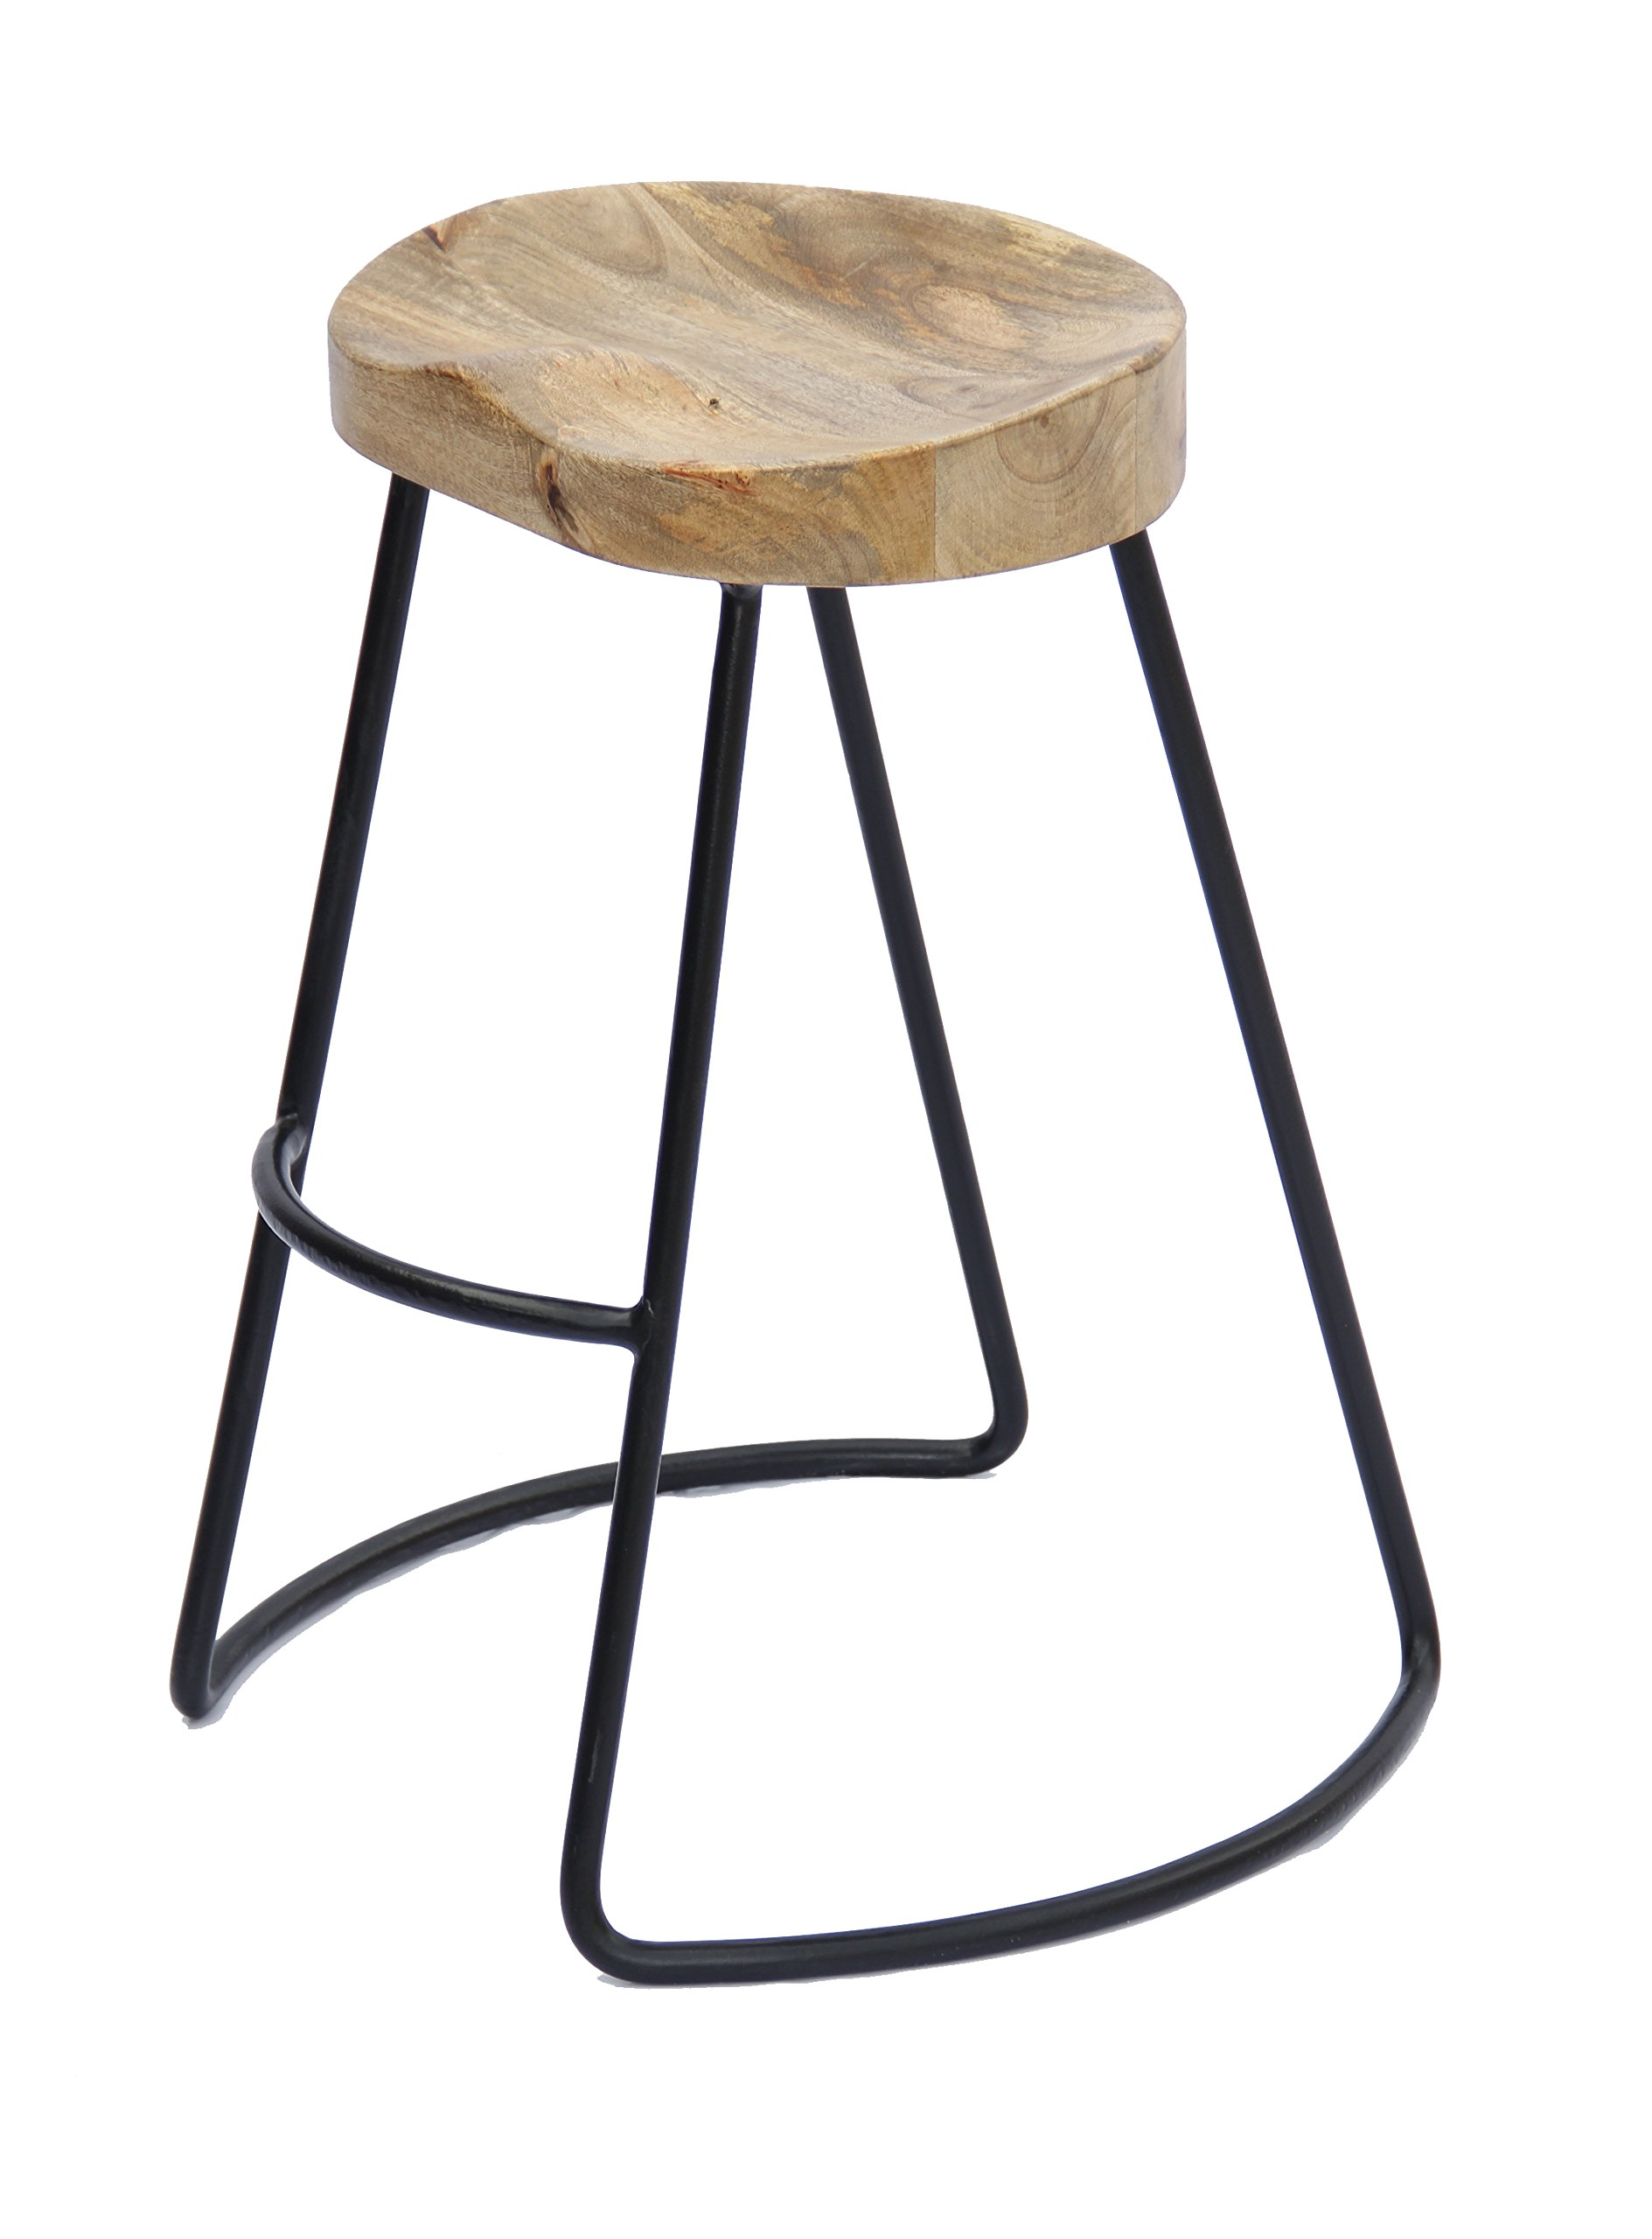 The Urban Port Classy Wooden Barstool with Iron Legs (Long)